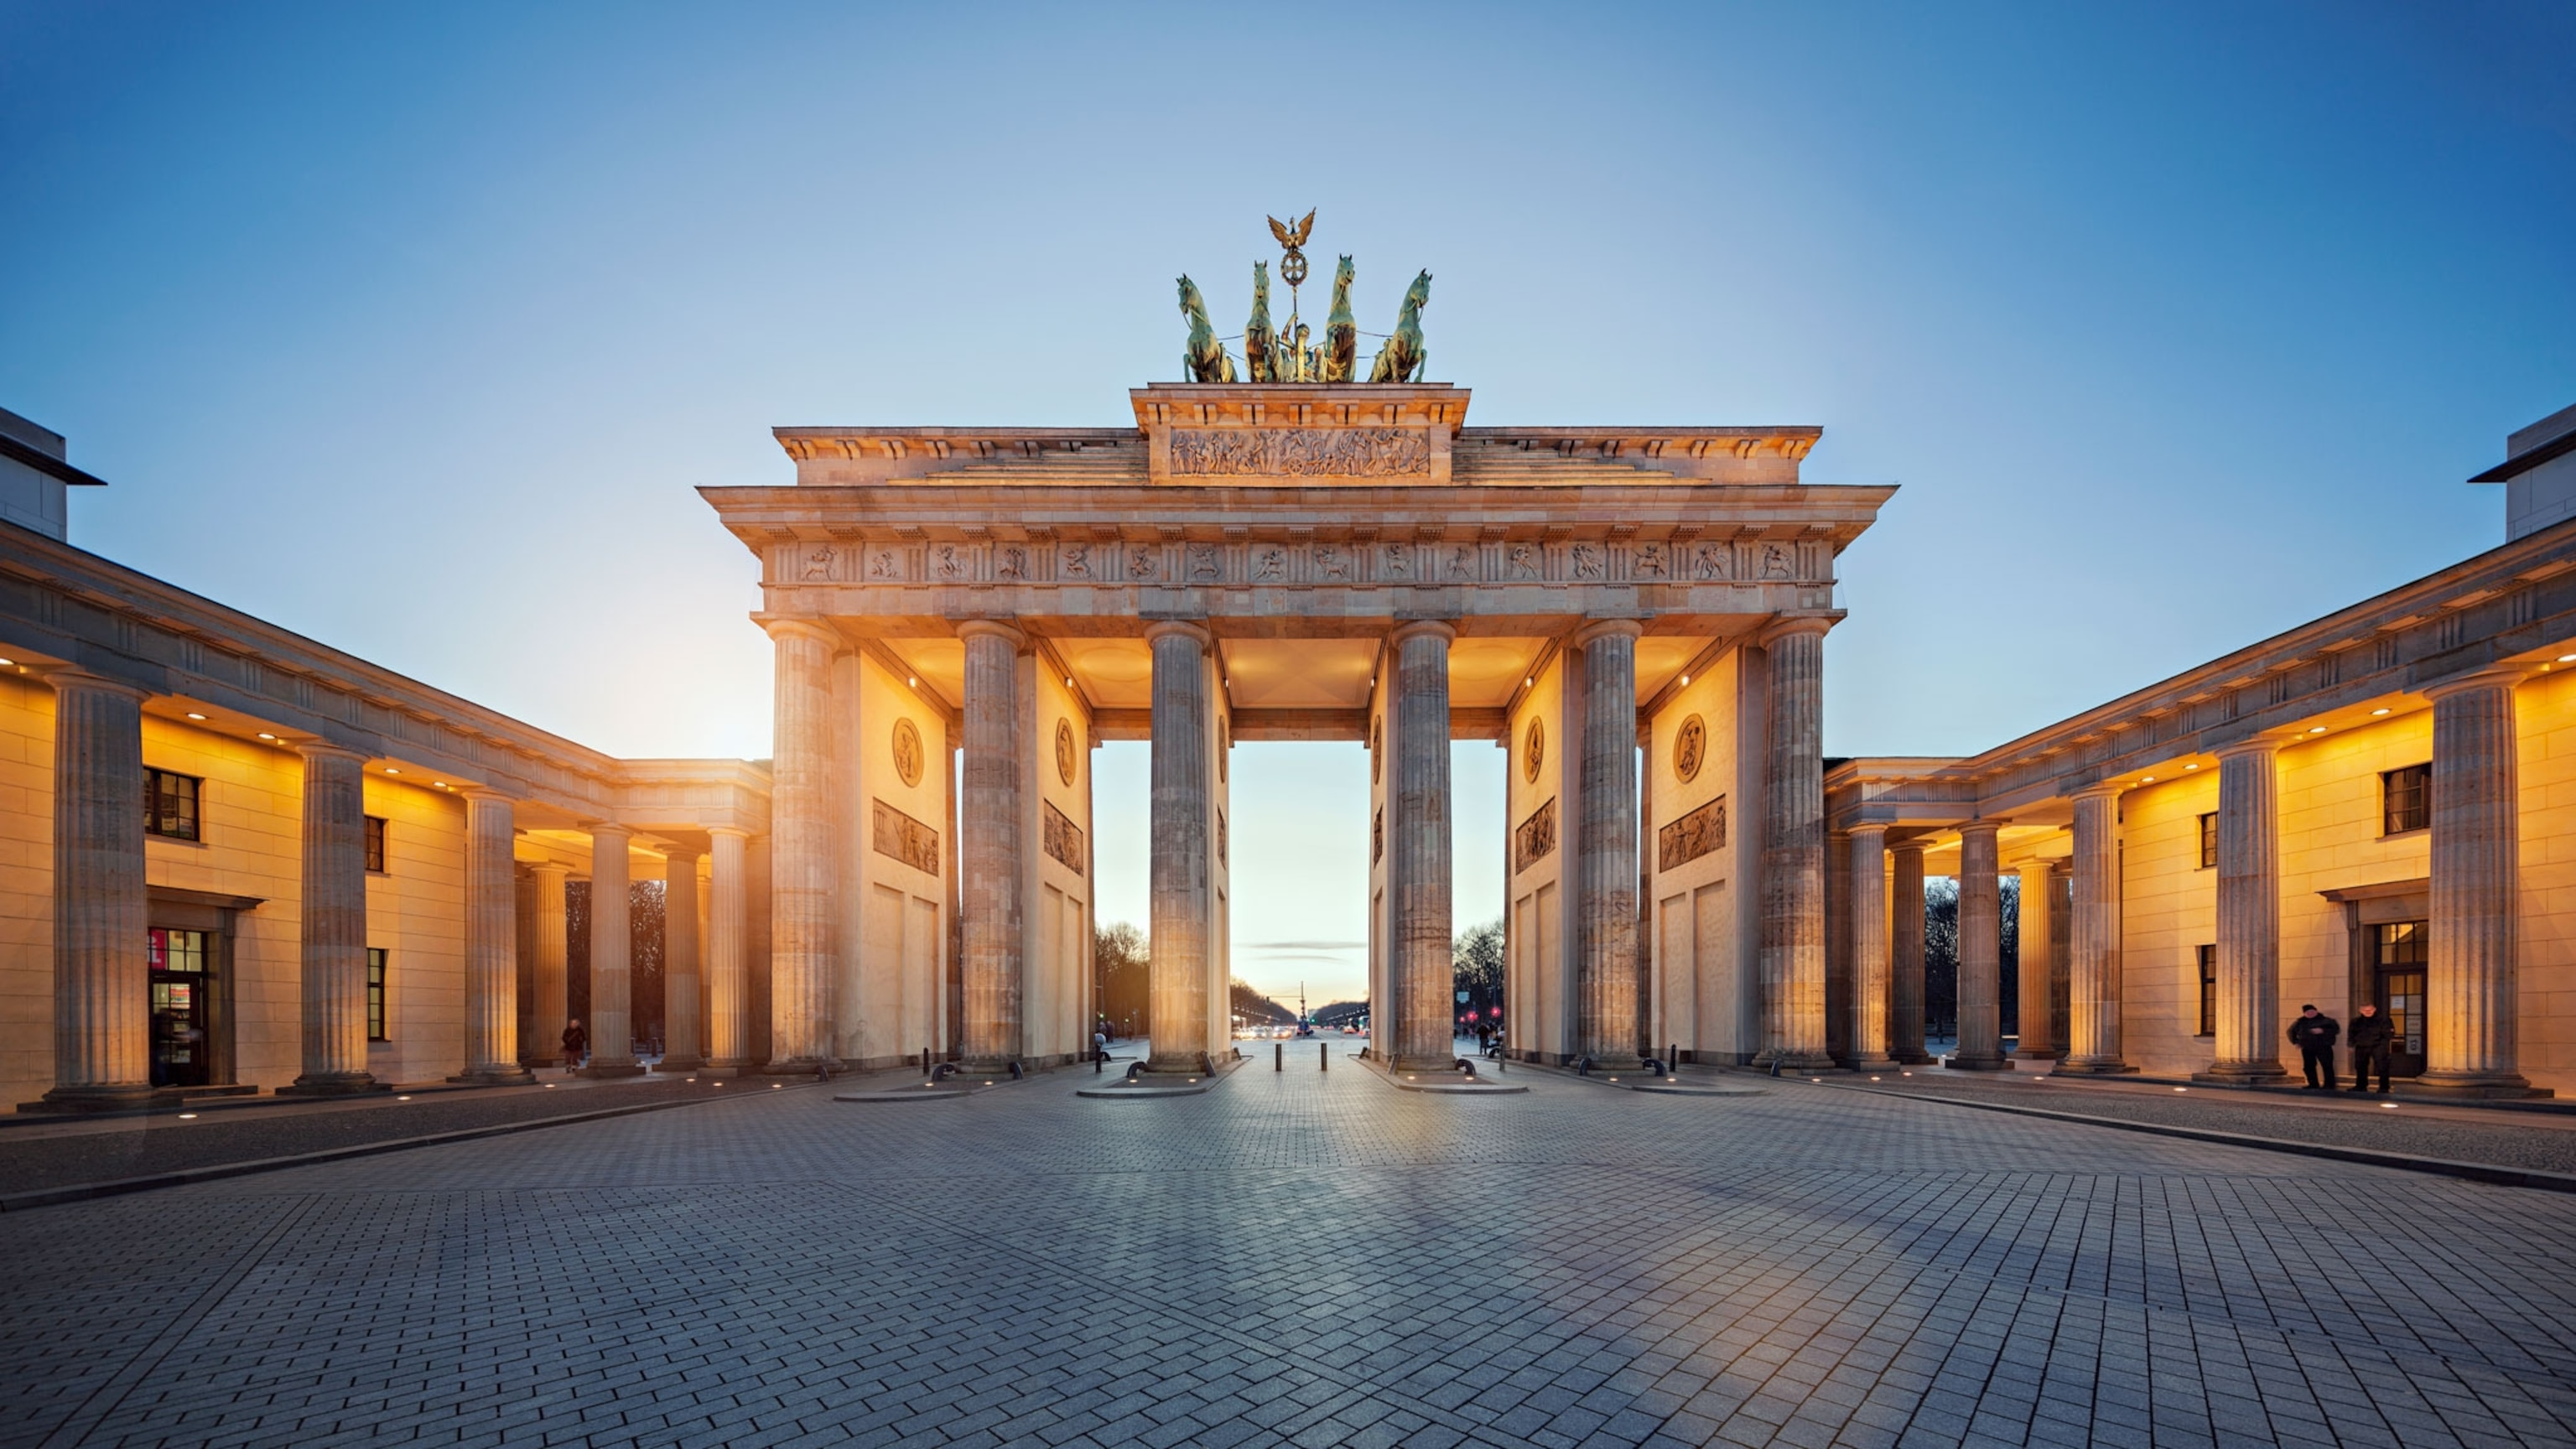 Top 10 Things to Do in Berlin, Germany